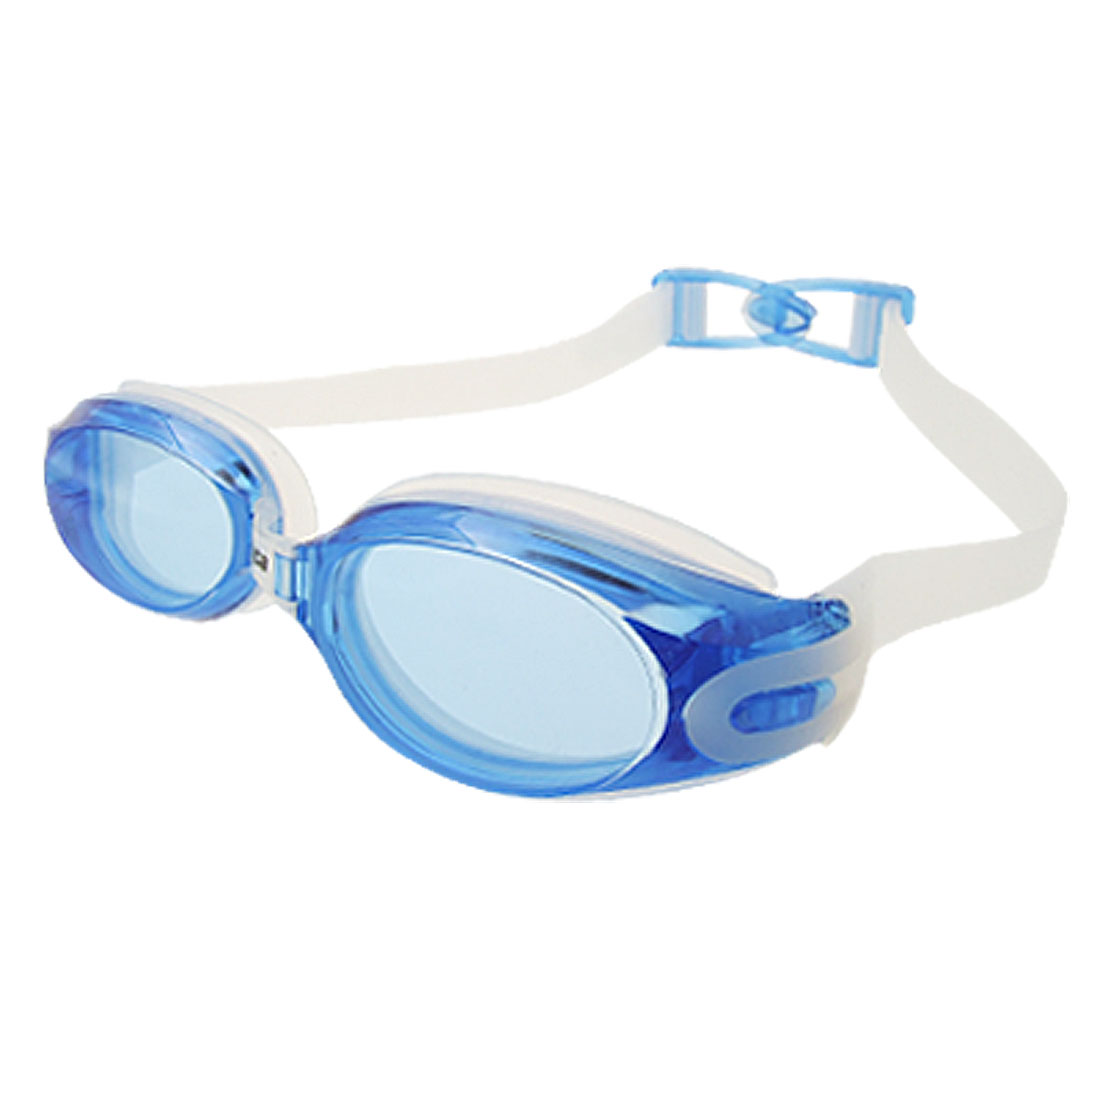 Bright Blue Frame Sports High-qualified Swimming Pool Swim Goggles Anti Fog